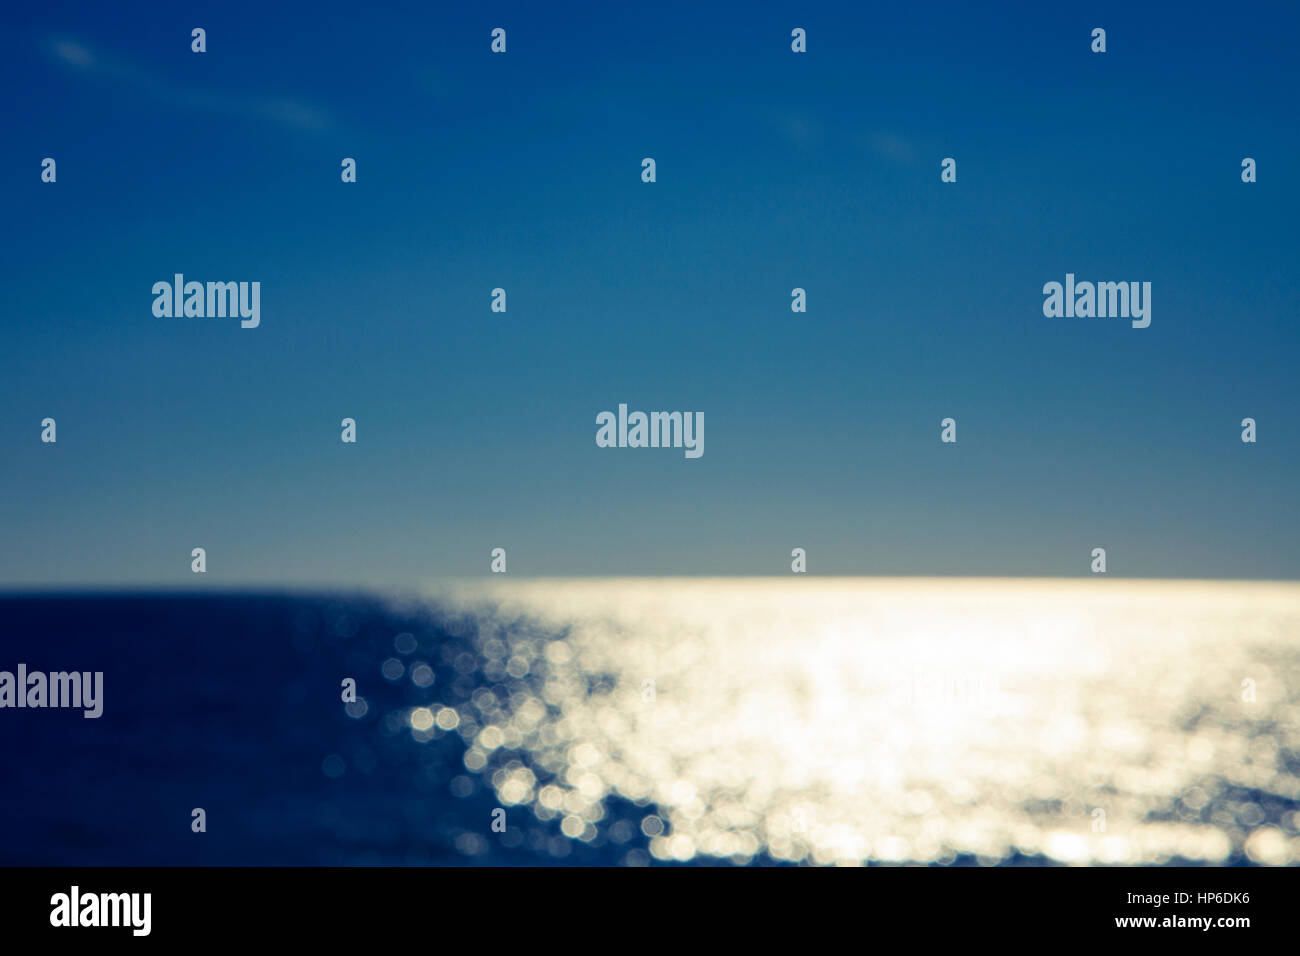 Blurred abstract ocean background. Sunlight reflecting on water. Bokeh effect. - Stock Image